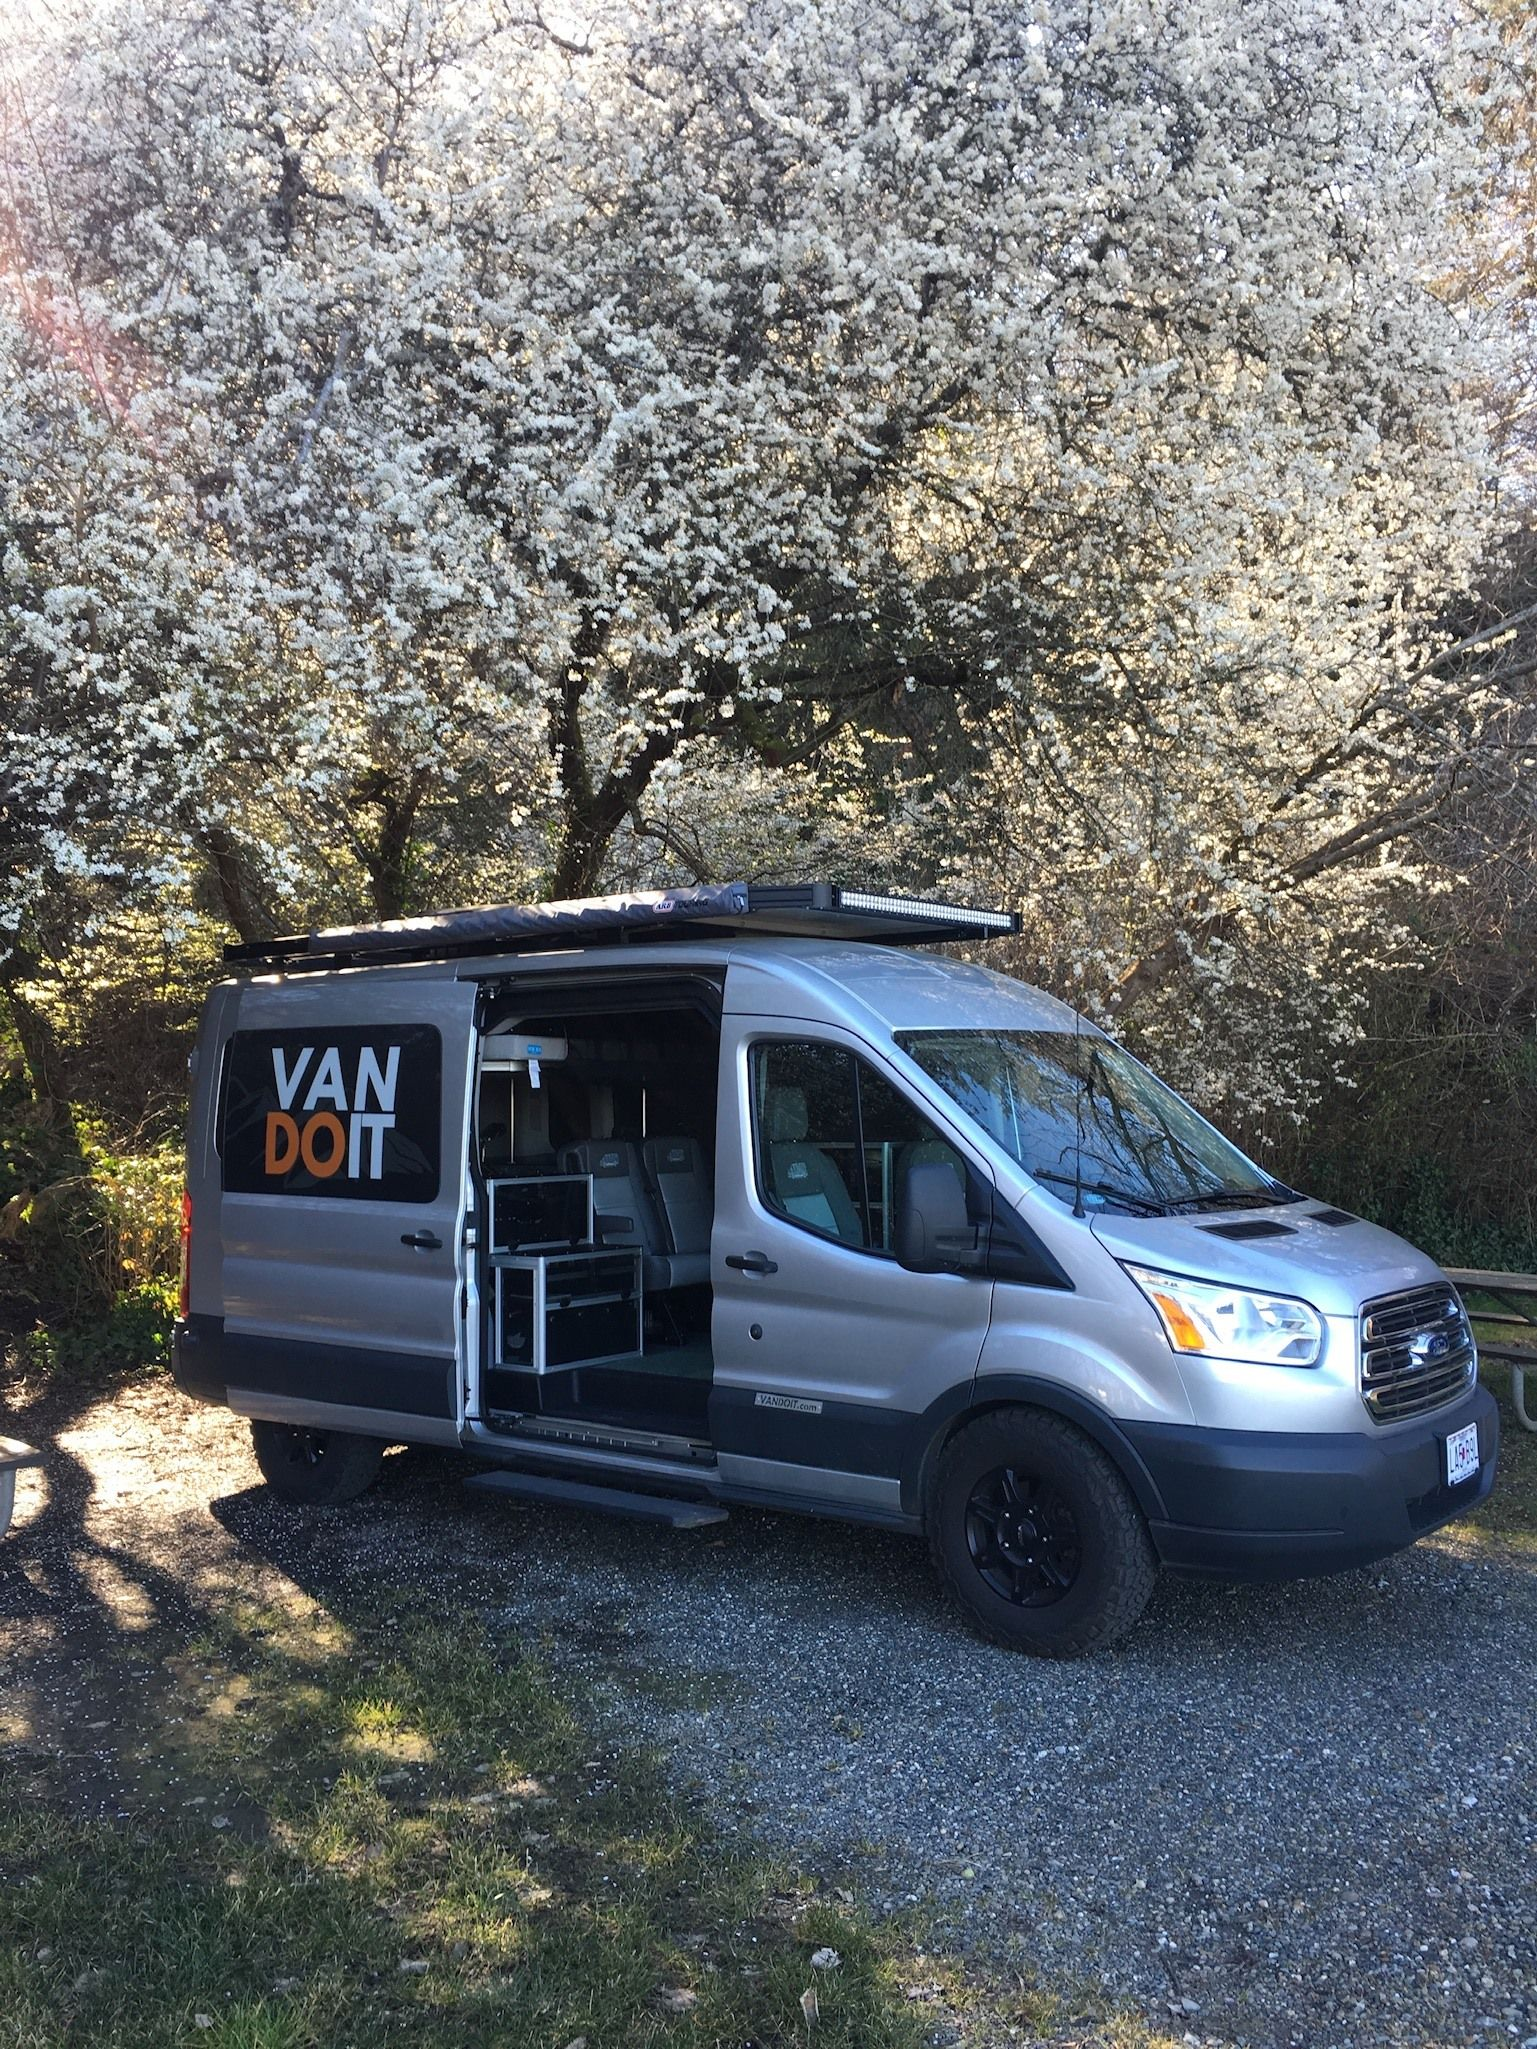 Seattle In Springtime In Vandoit Adventurevan Conversionvan Vanconversion Van Vans Rv Vanbuildout C